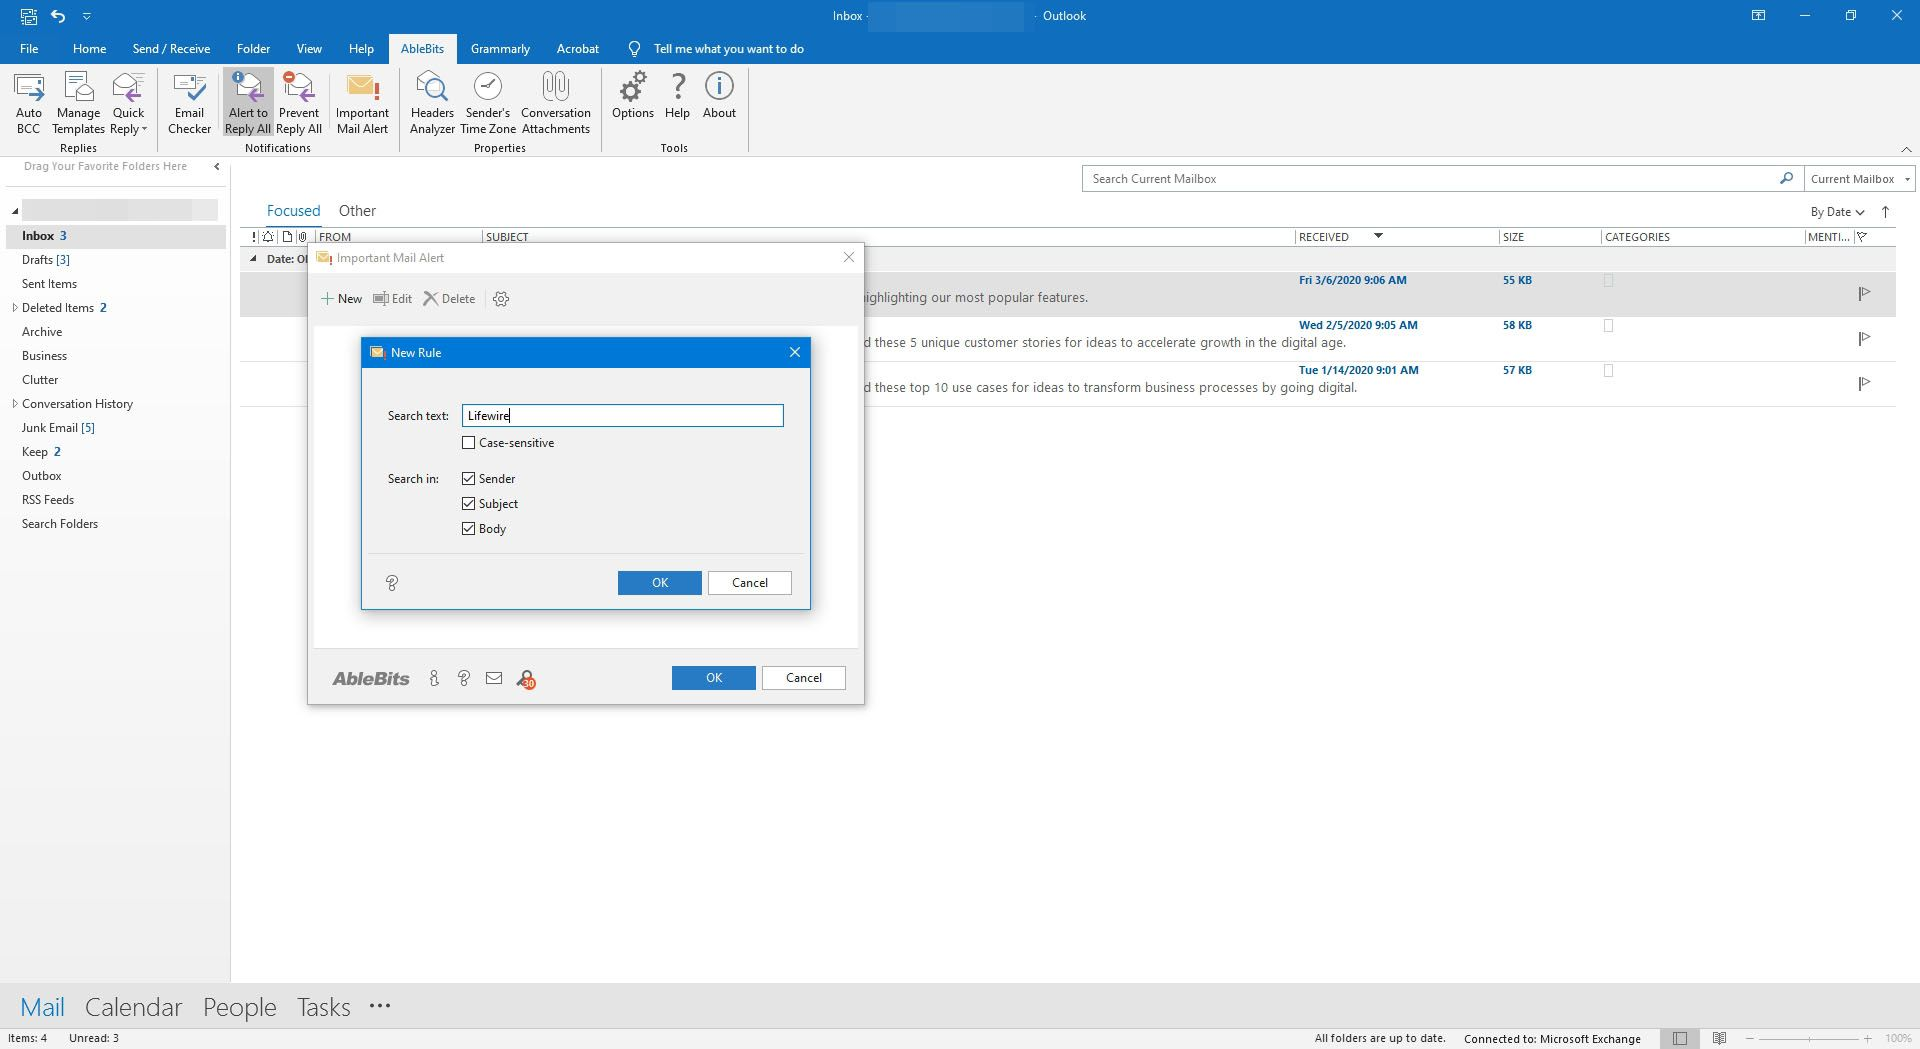 Ablebits add-ins for Outlook.